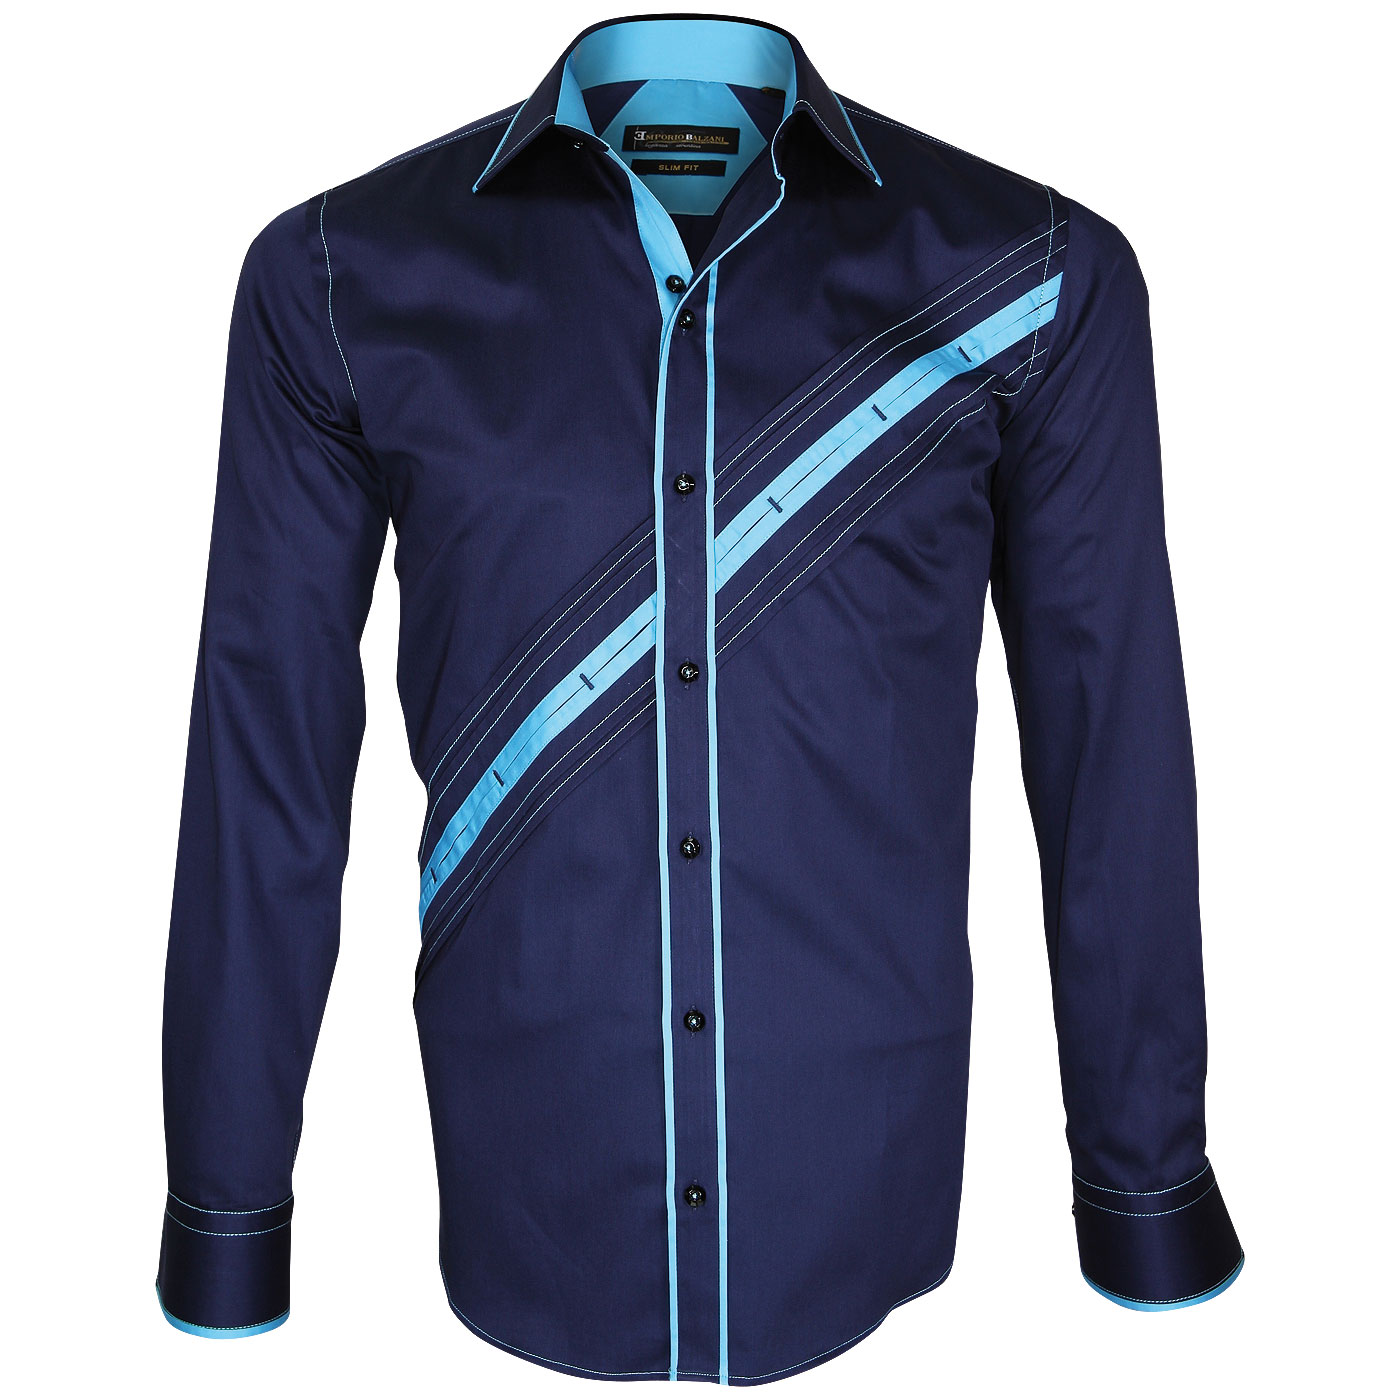 Italian Fashion Shirt Collection on Webmenshrits.com